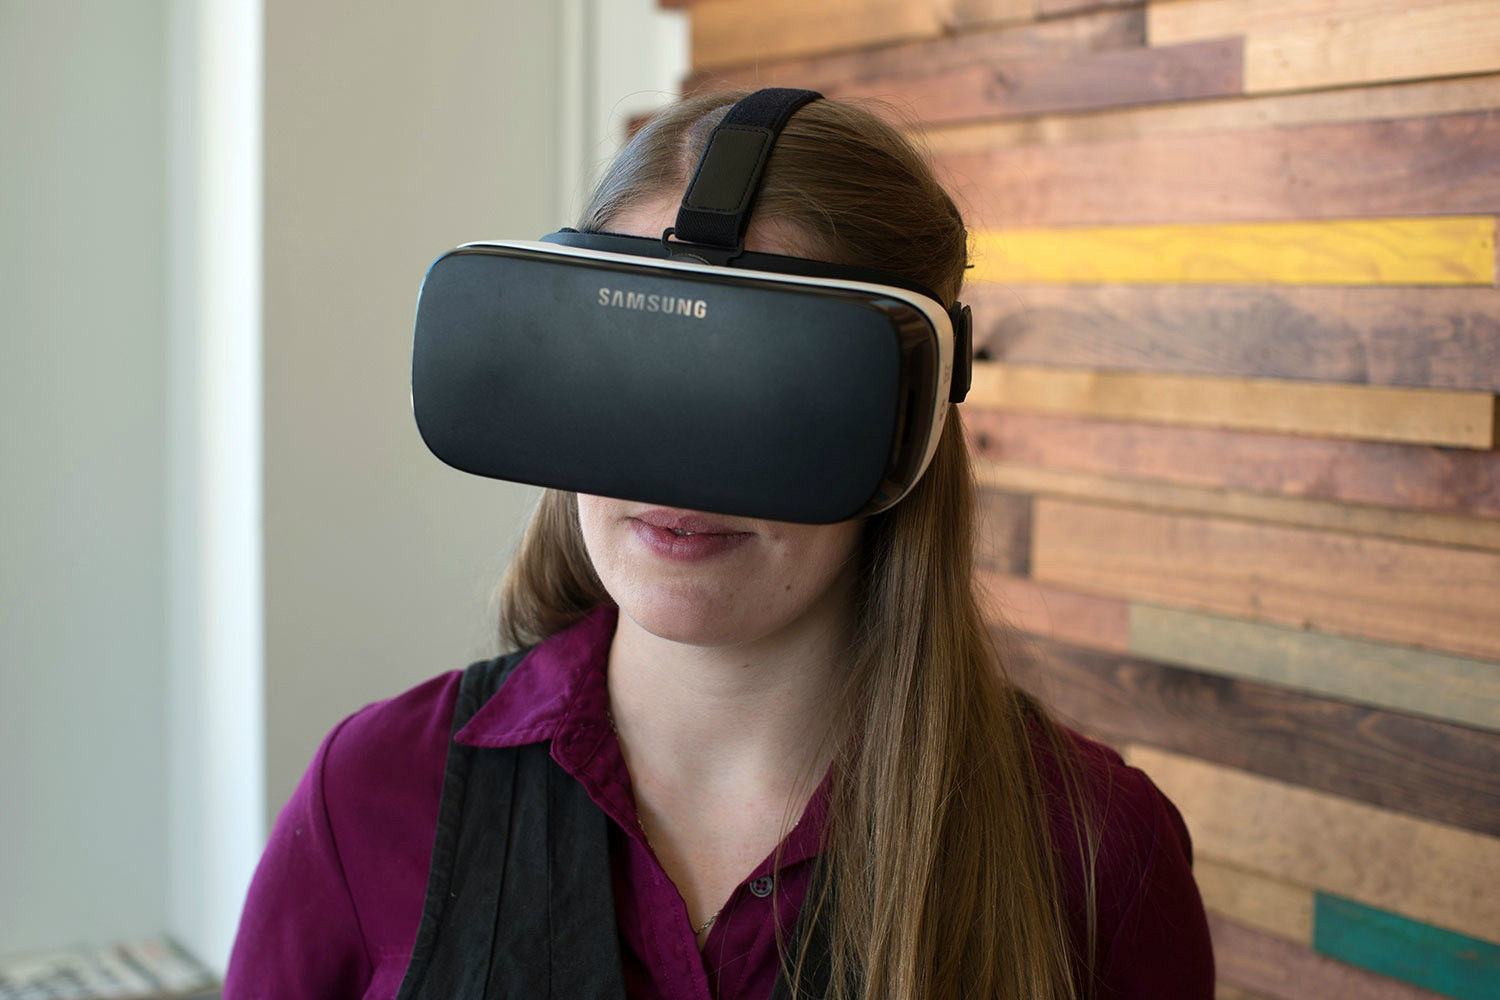 Is there a new Samsung Gear VR on the horizon?